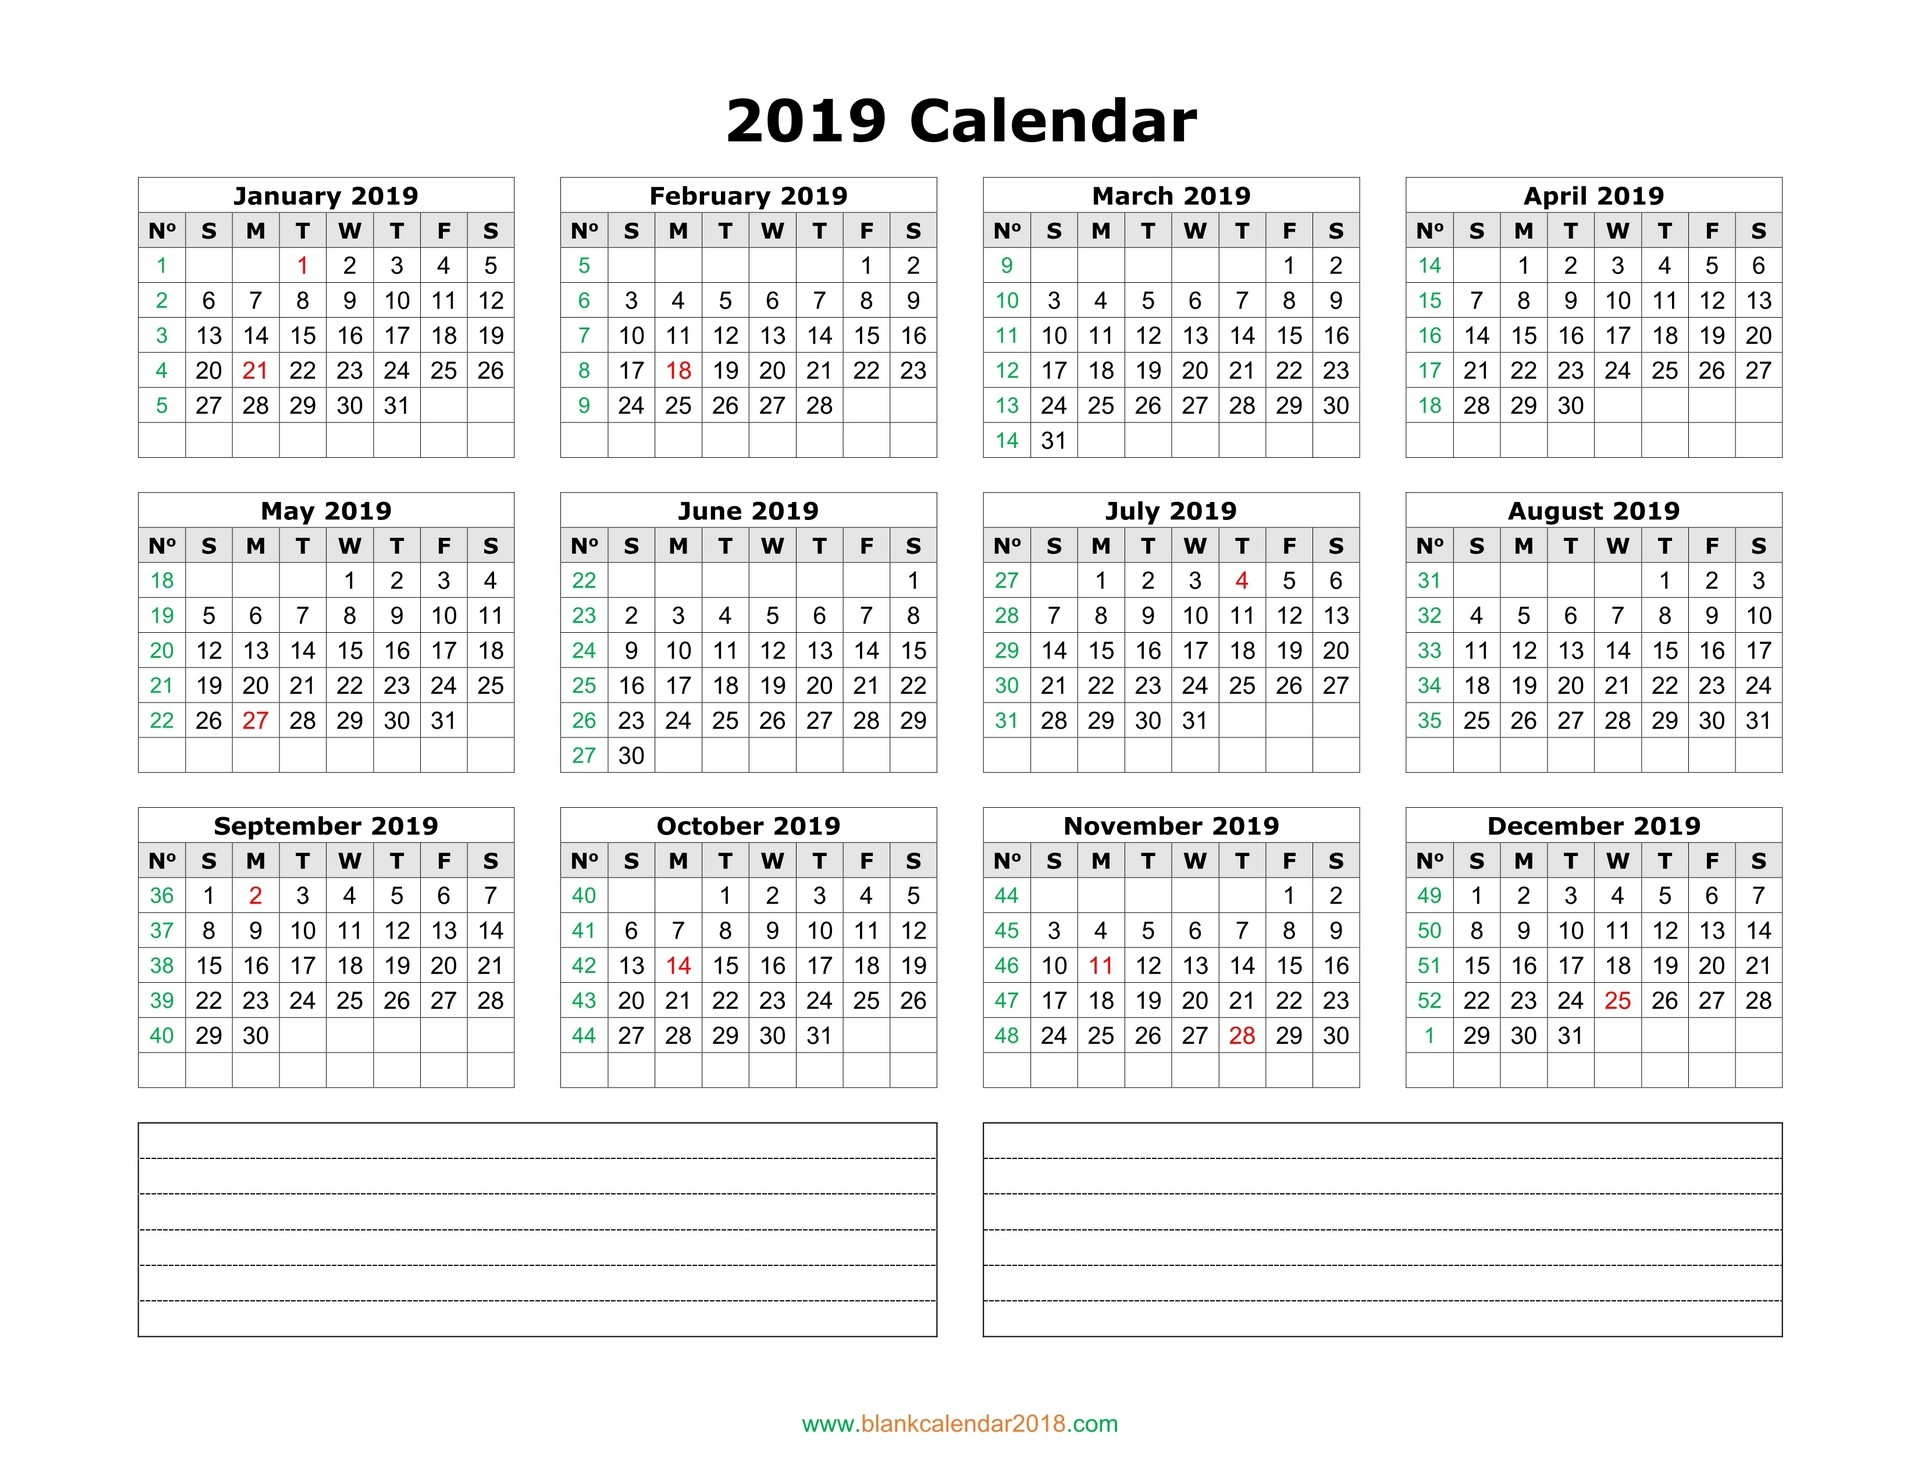 blank calendar 2019 with notes landscape